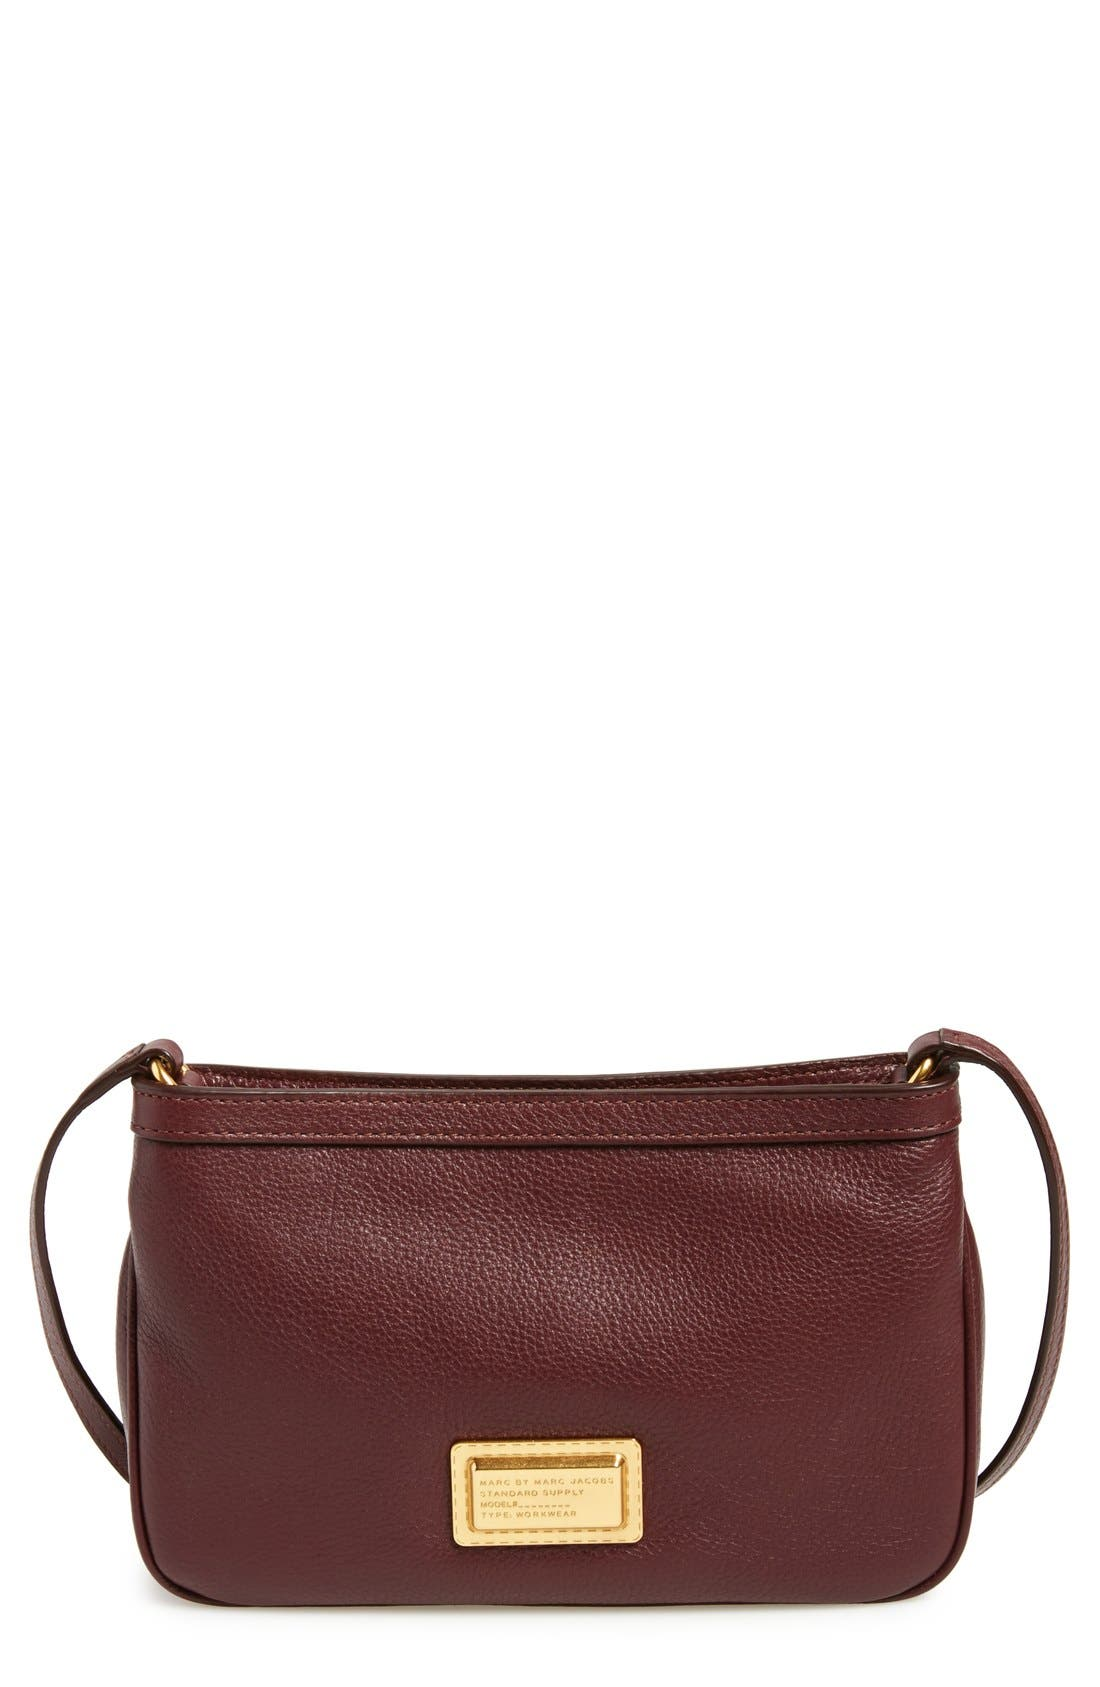 MARC BY MARC JACOBS 'Take Your Marc - Percy' Crossbody Bag,                             Main thumbnail 1, color,                             Cardamom